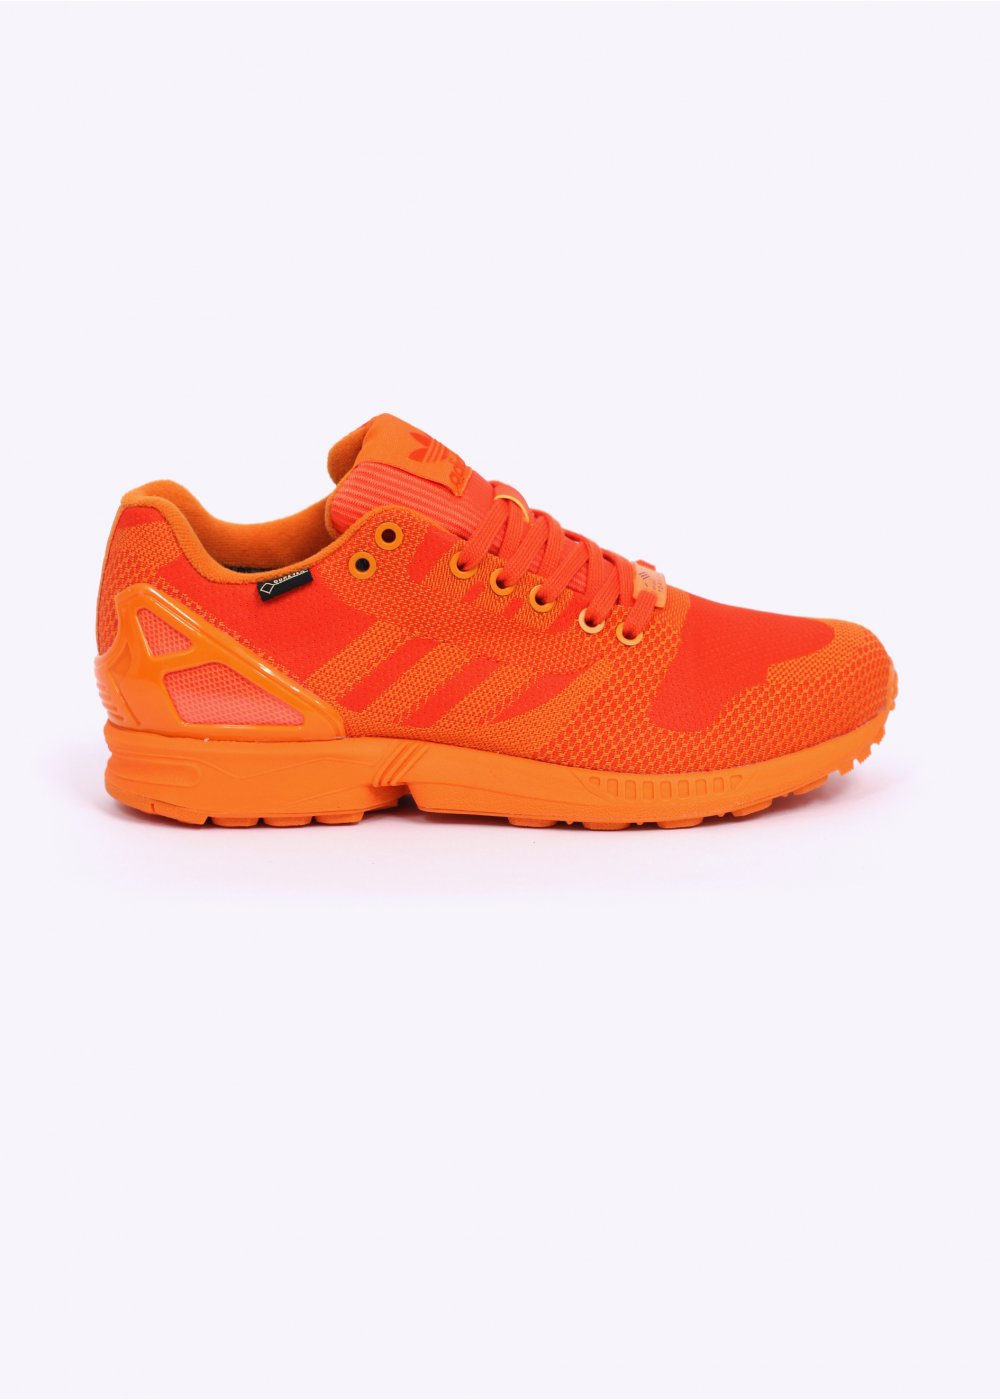 852e35a5664b adidas Originals ZX Flux Weave OG GTX Gore-Tex Trainers - Bright Orange    Orange